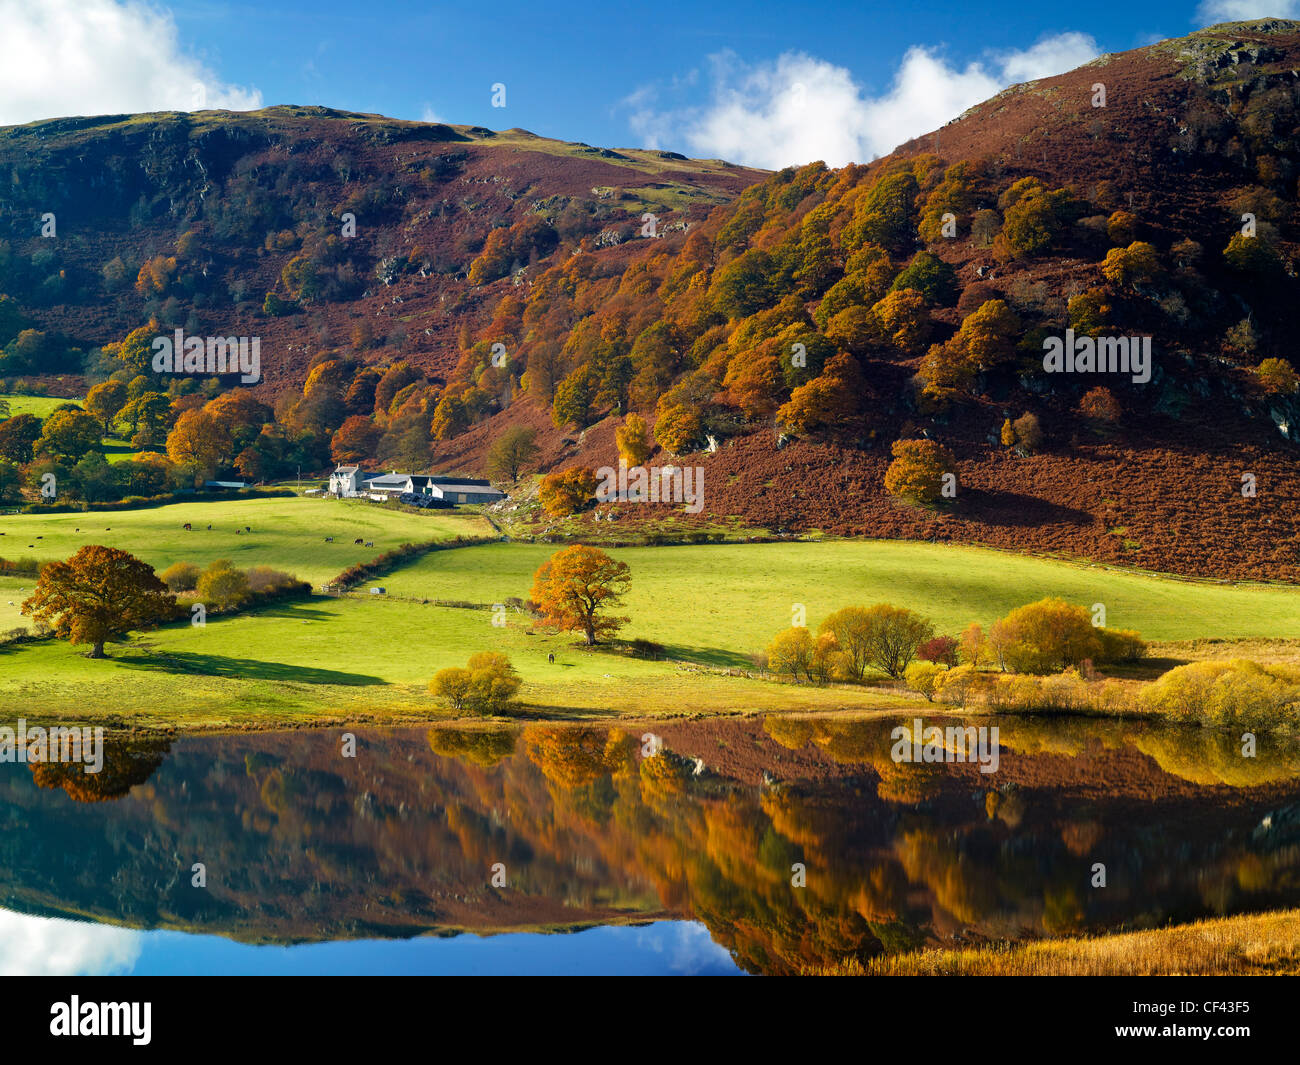 Autumnal colours on display in the Elan Valley. - Stock Image